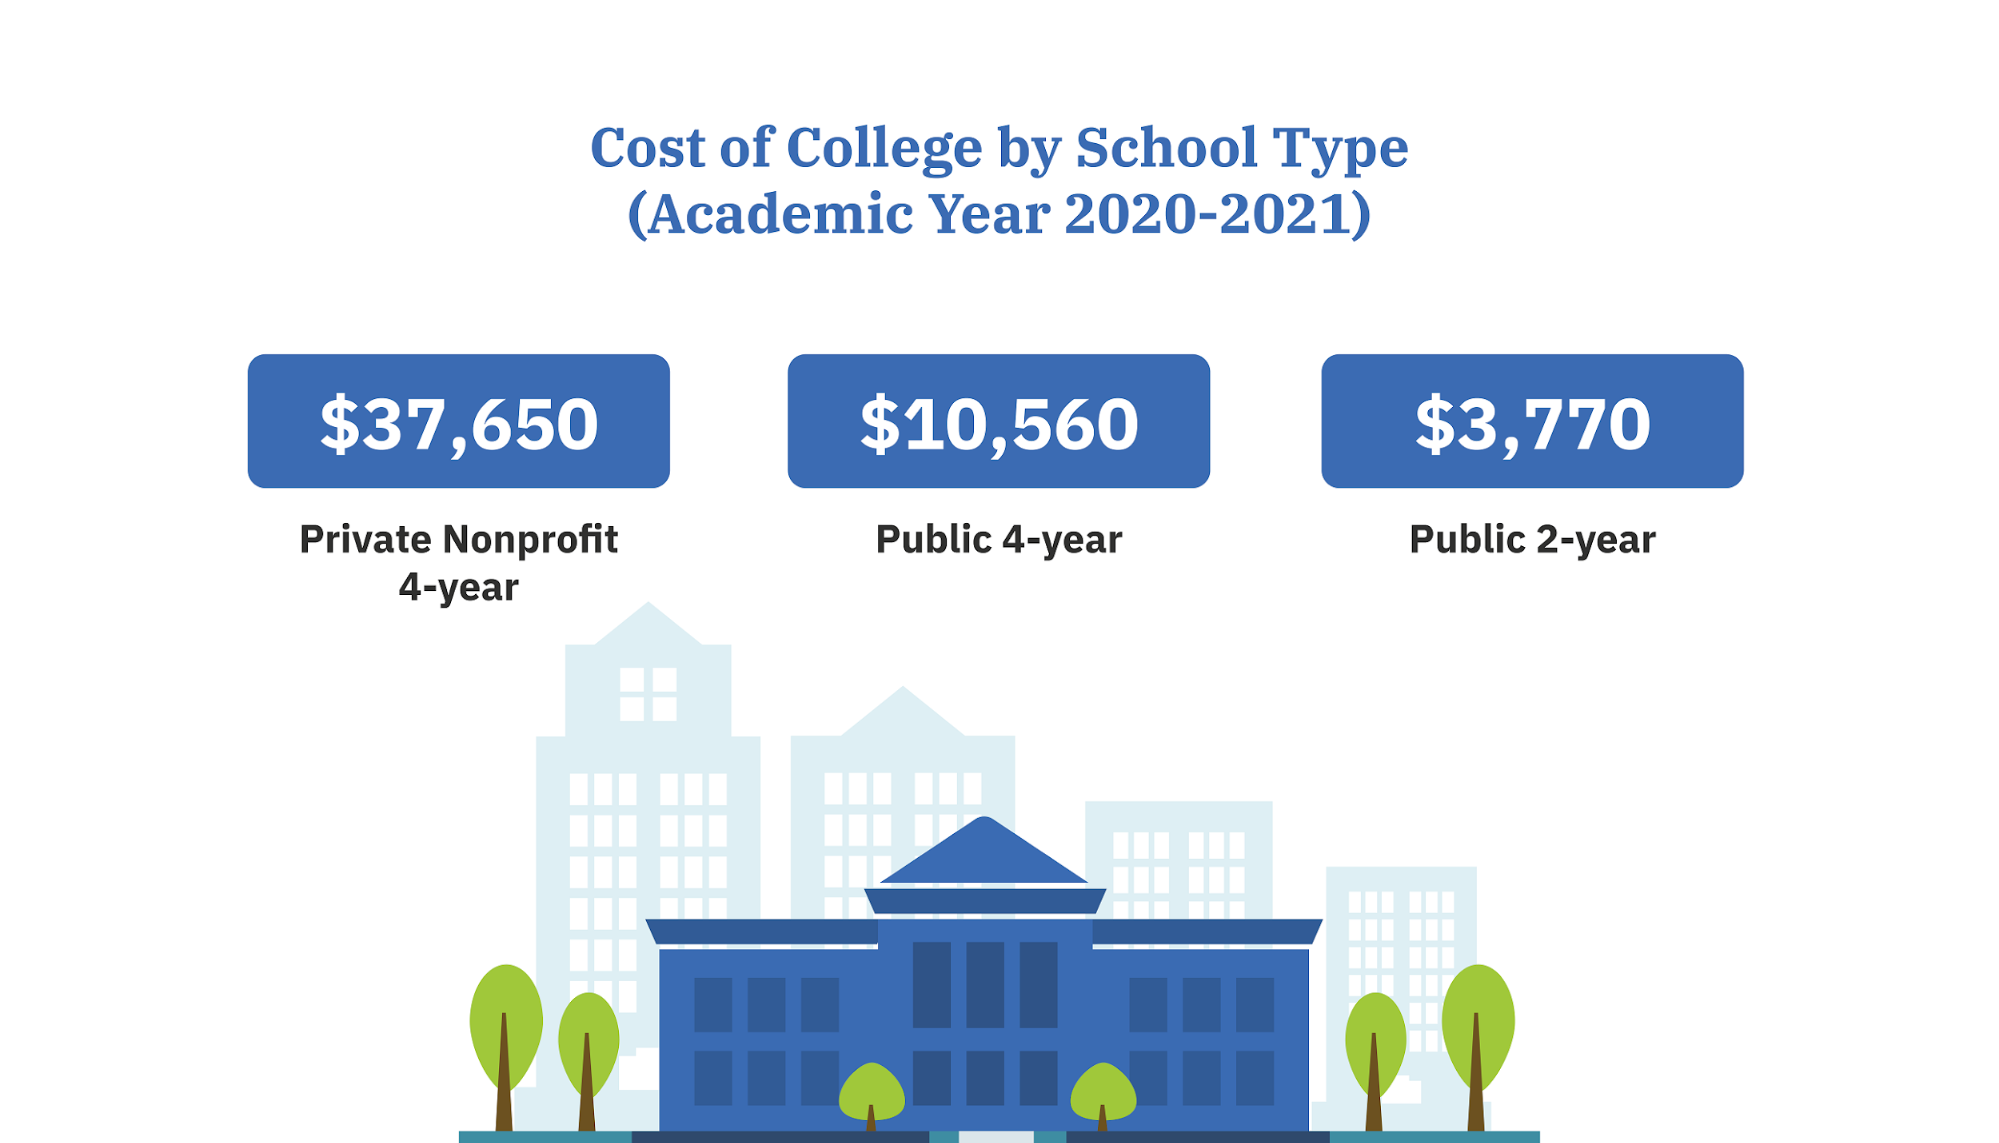 Cost of college by school type